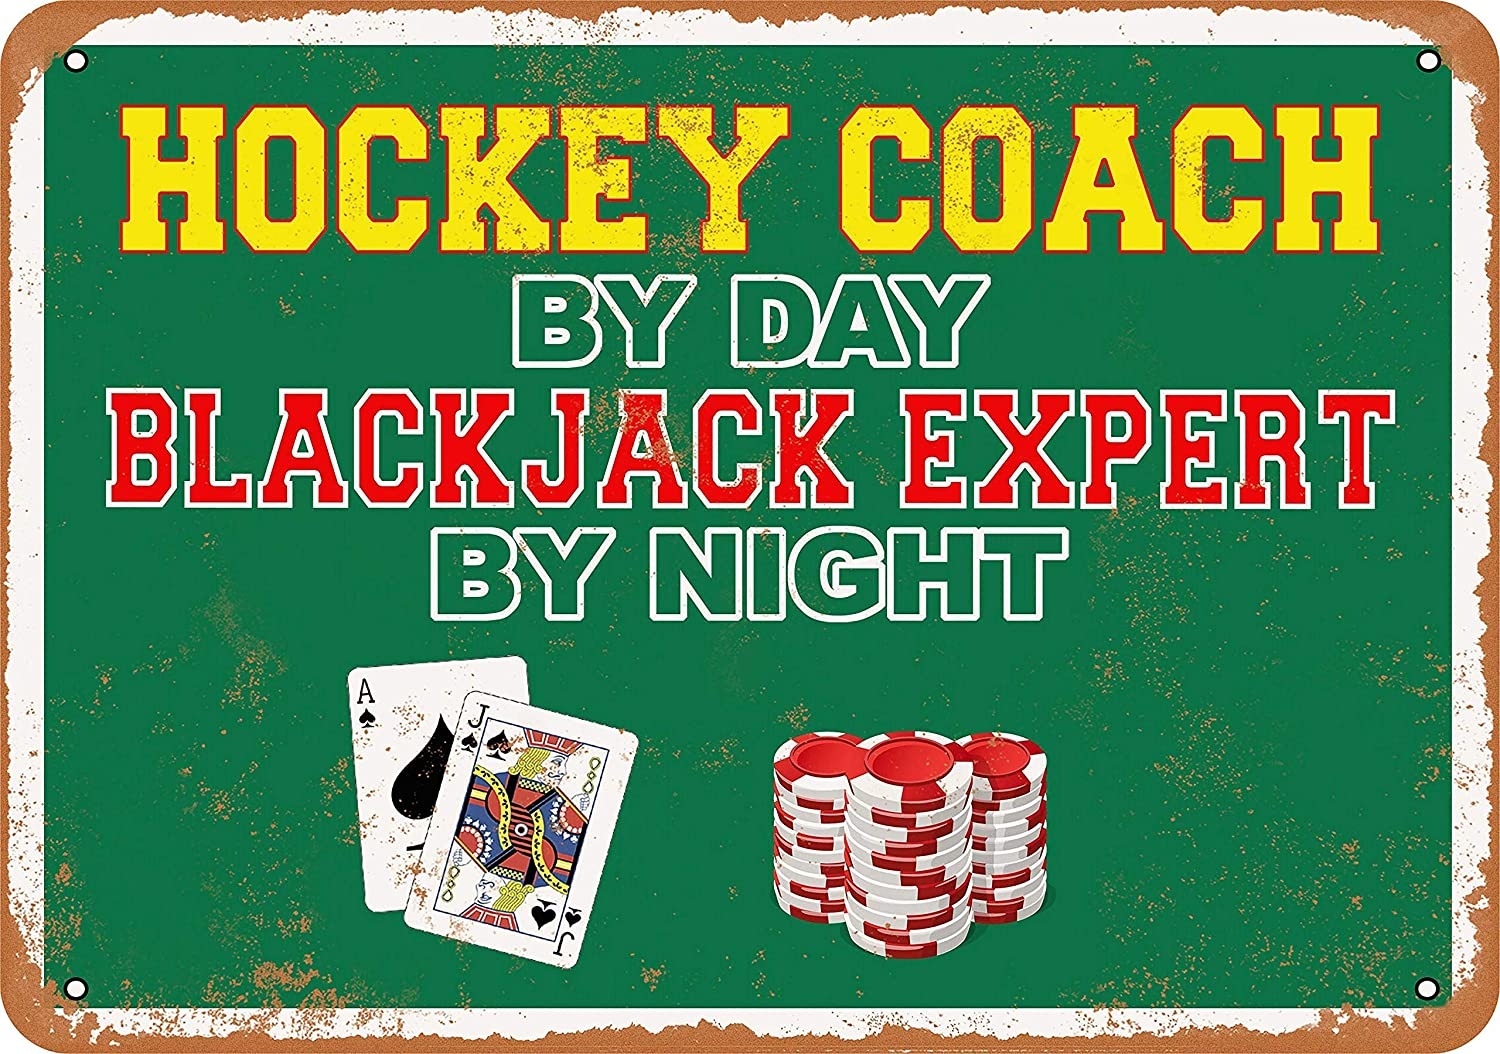 Hockey Coach by Day, Blackjack Expert by Night Vintage Look 8x12 Inches Metal Tin Sign Retro - Wall Decor Plaque Poster